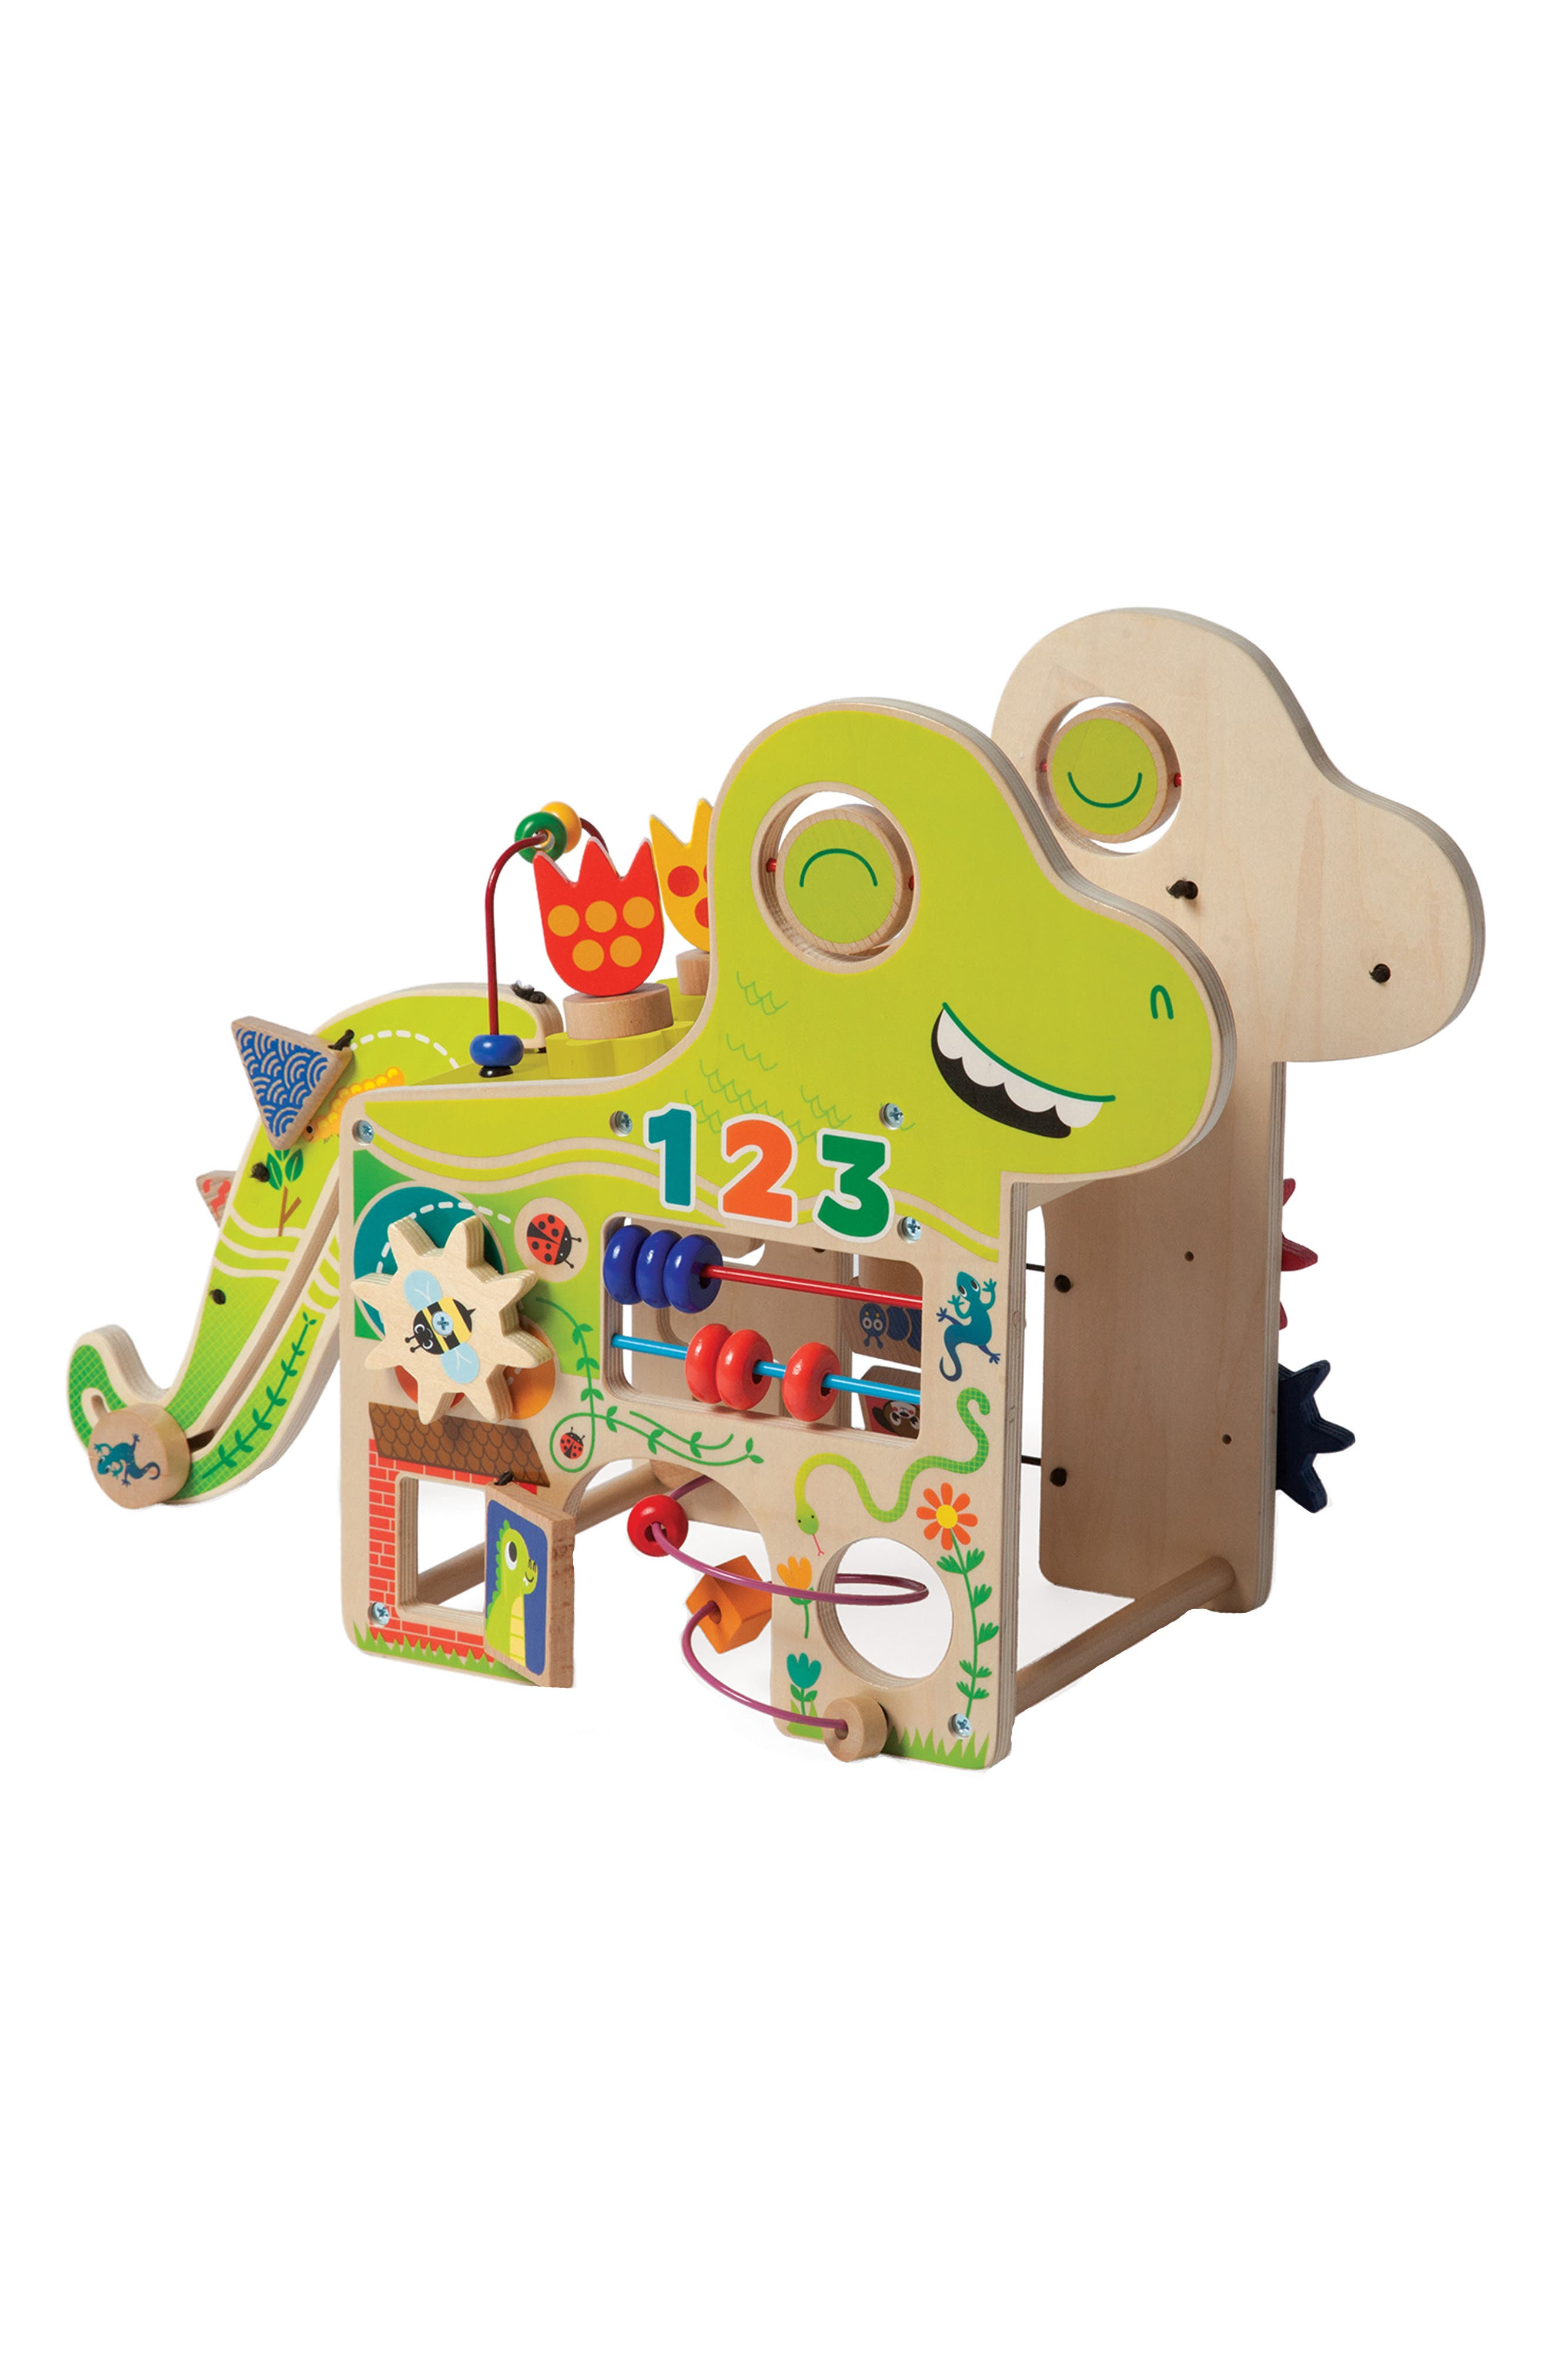 Wooden Playful Dino Activity Center,                             Main thumbnail 1, color,                             Green